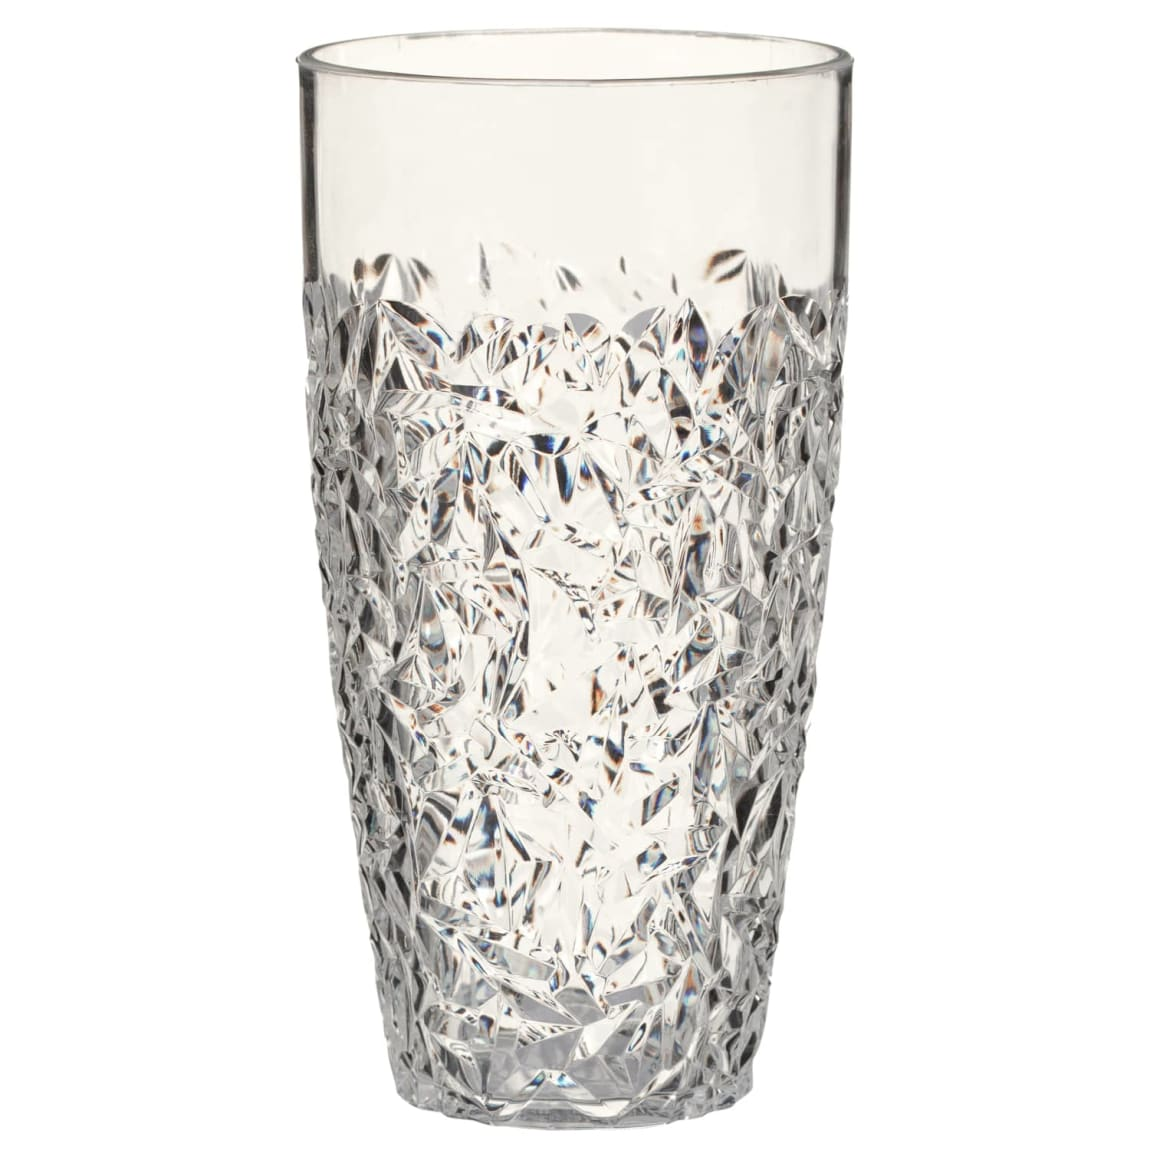 Crackle Effect Tall Tumbler